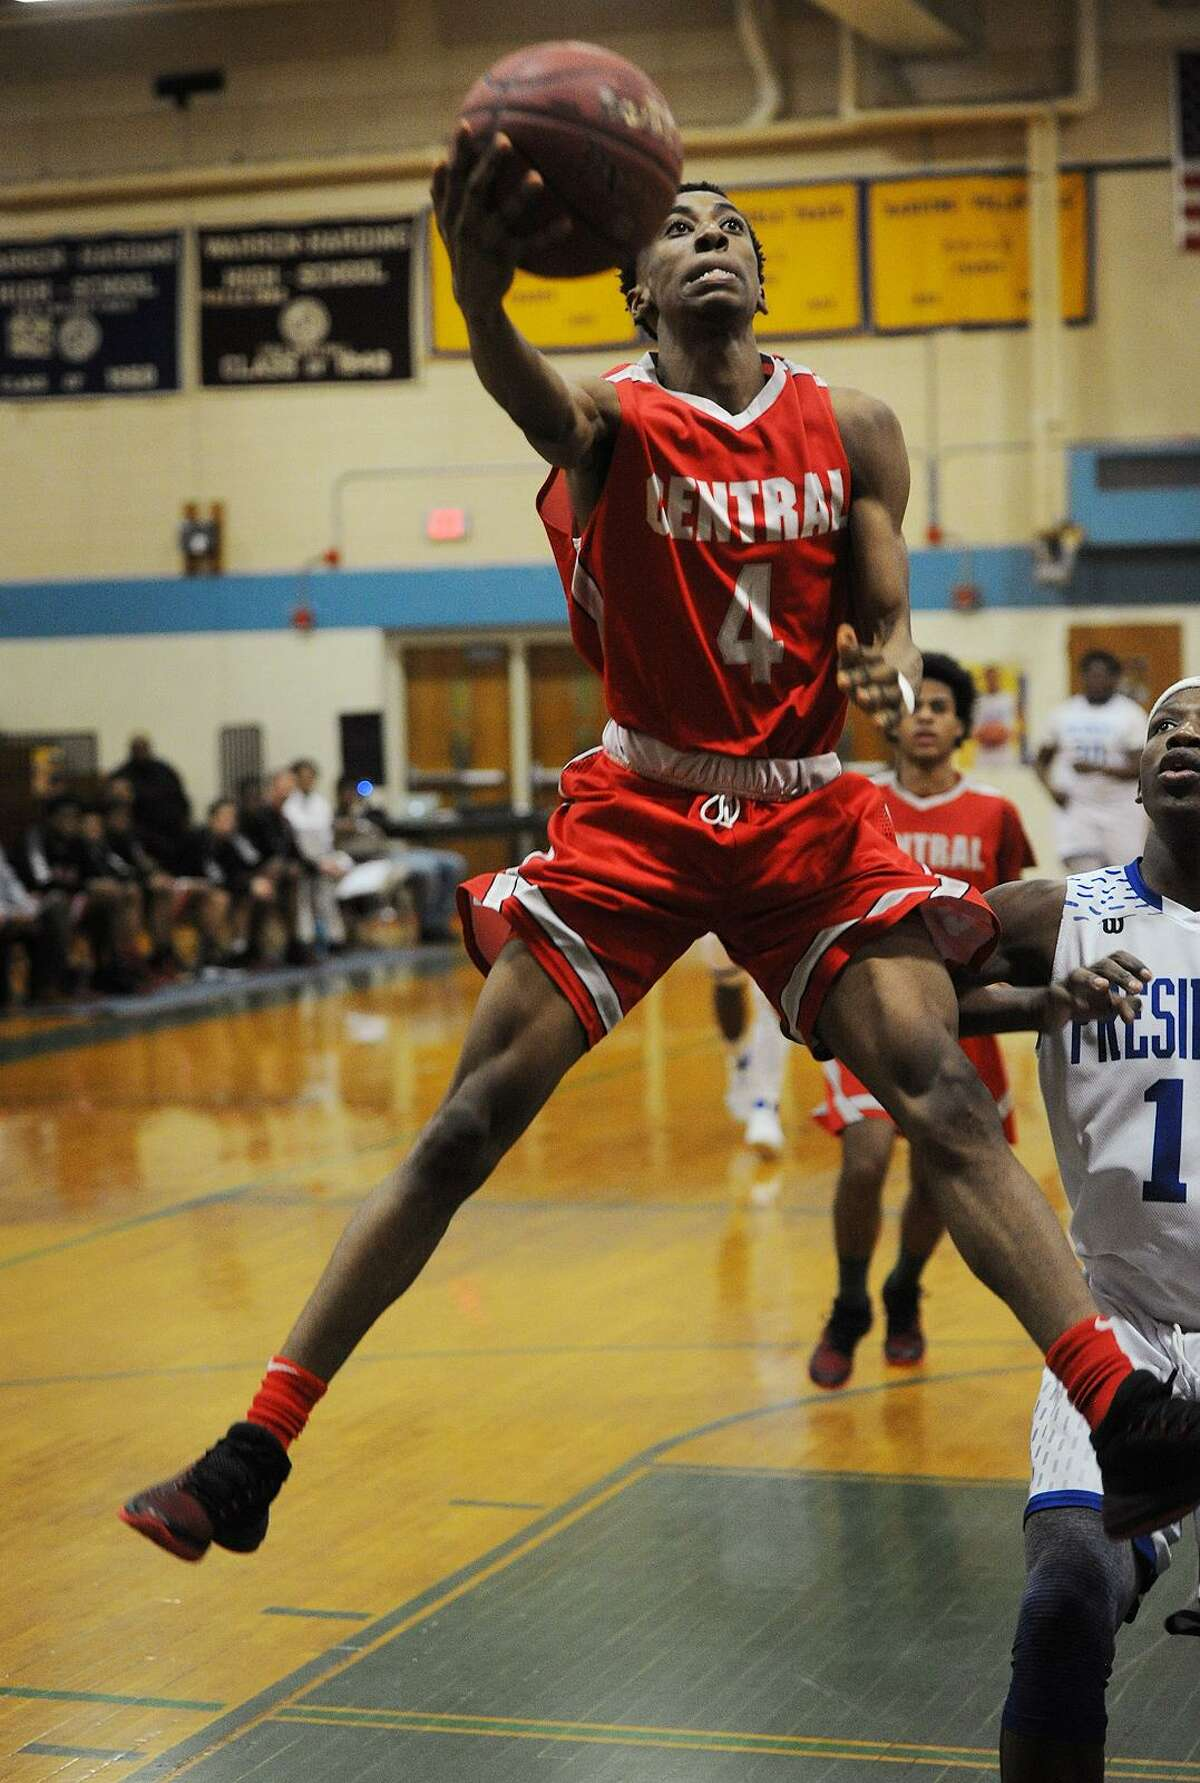 Bridgeport Central's Zack Williams drives to the basket in the first half of their boys basketball game with Harding at Harding High School in Bridgeport, Conn. on Thursday, February 22, 2018. The game was the final regular season game to be played at Miska Gymnasium as the new Harding High School will open next fall.